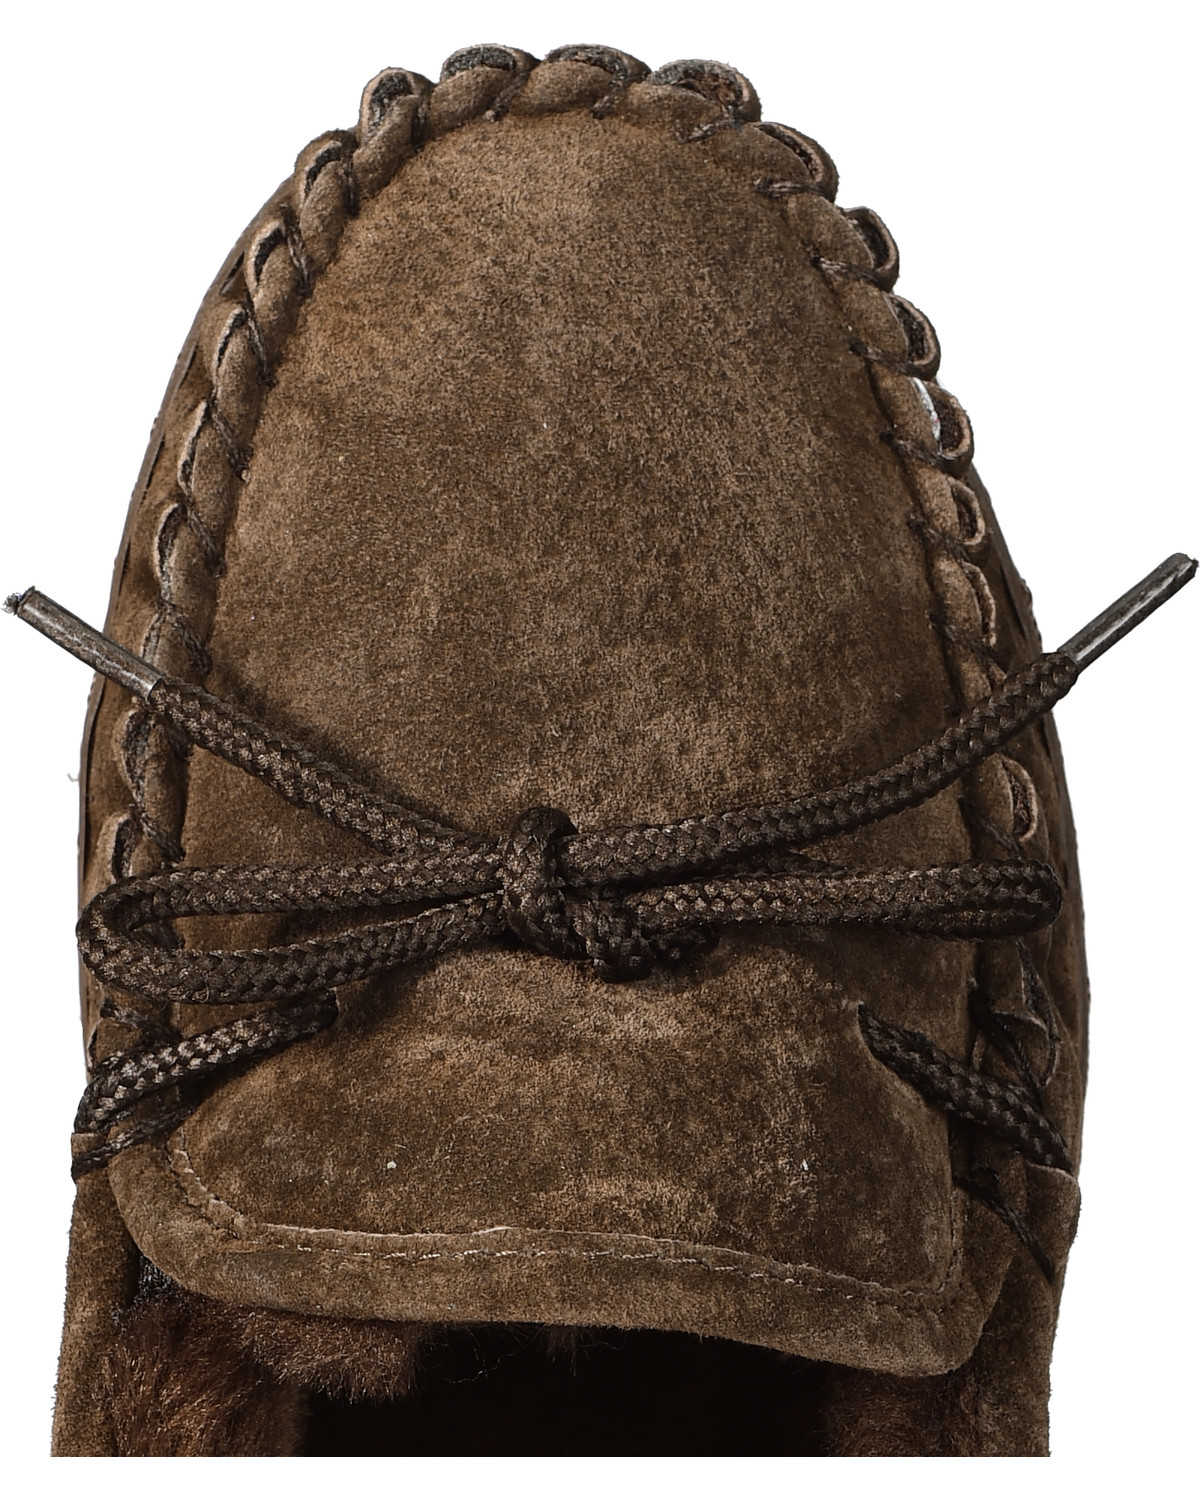 213e241e2c8 Lamo Women s Leather Moccasin Slippers - Country Outfitter